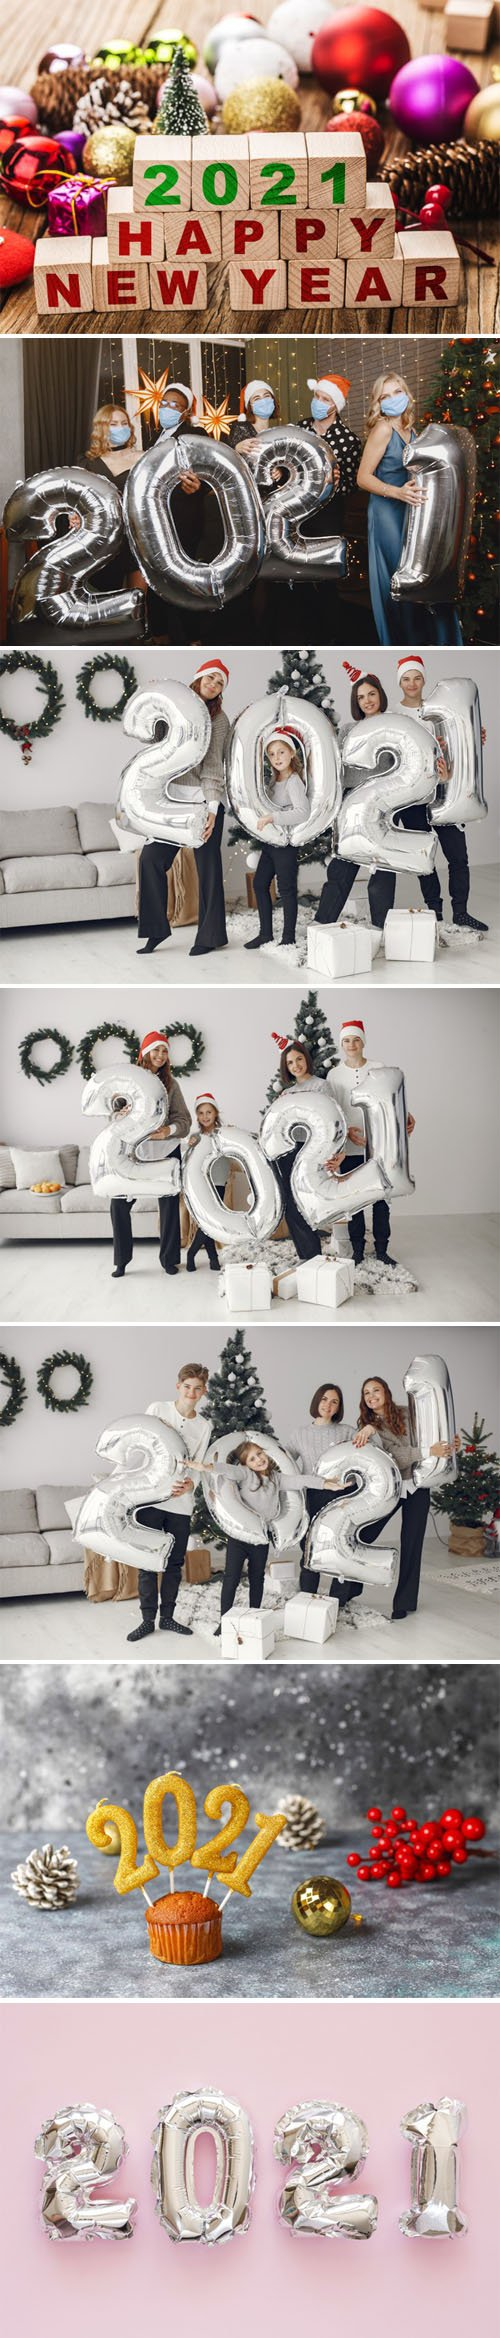 7 Happy New Year 2021 Photos Collection